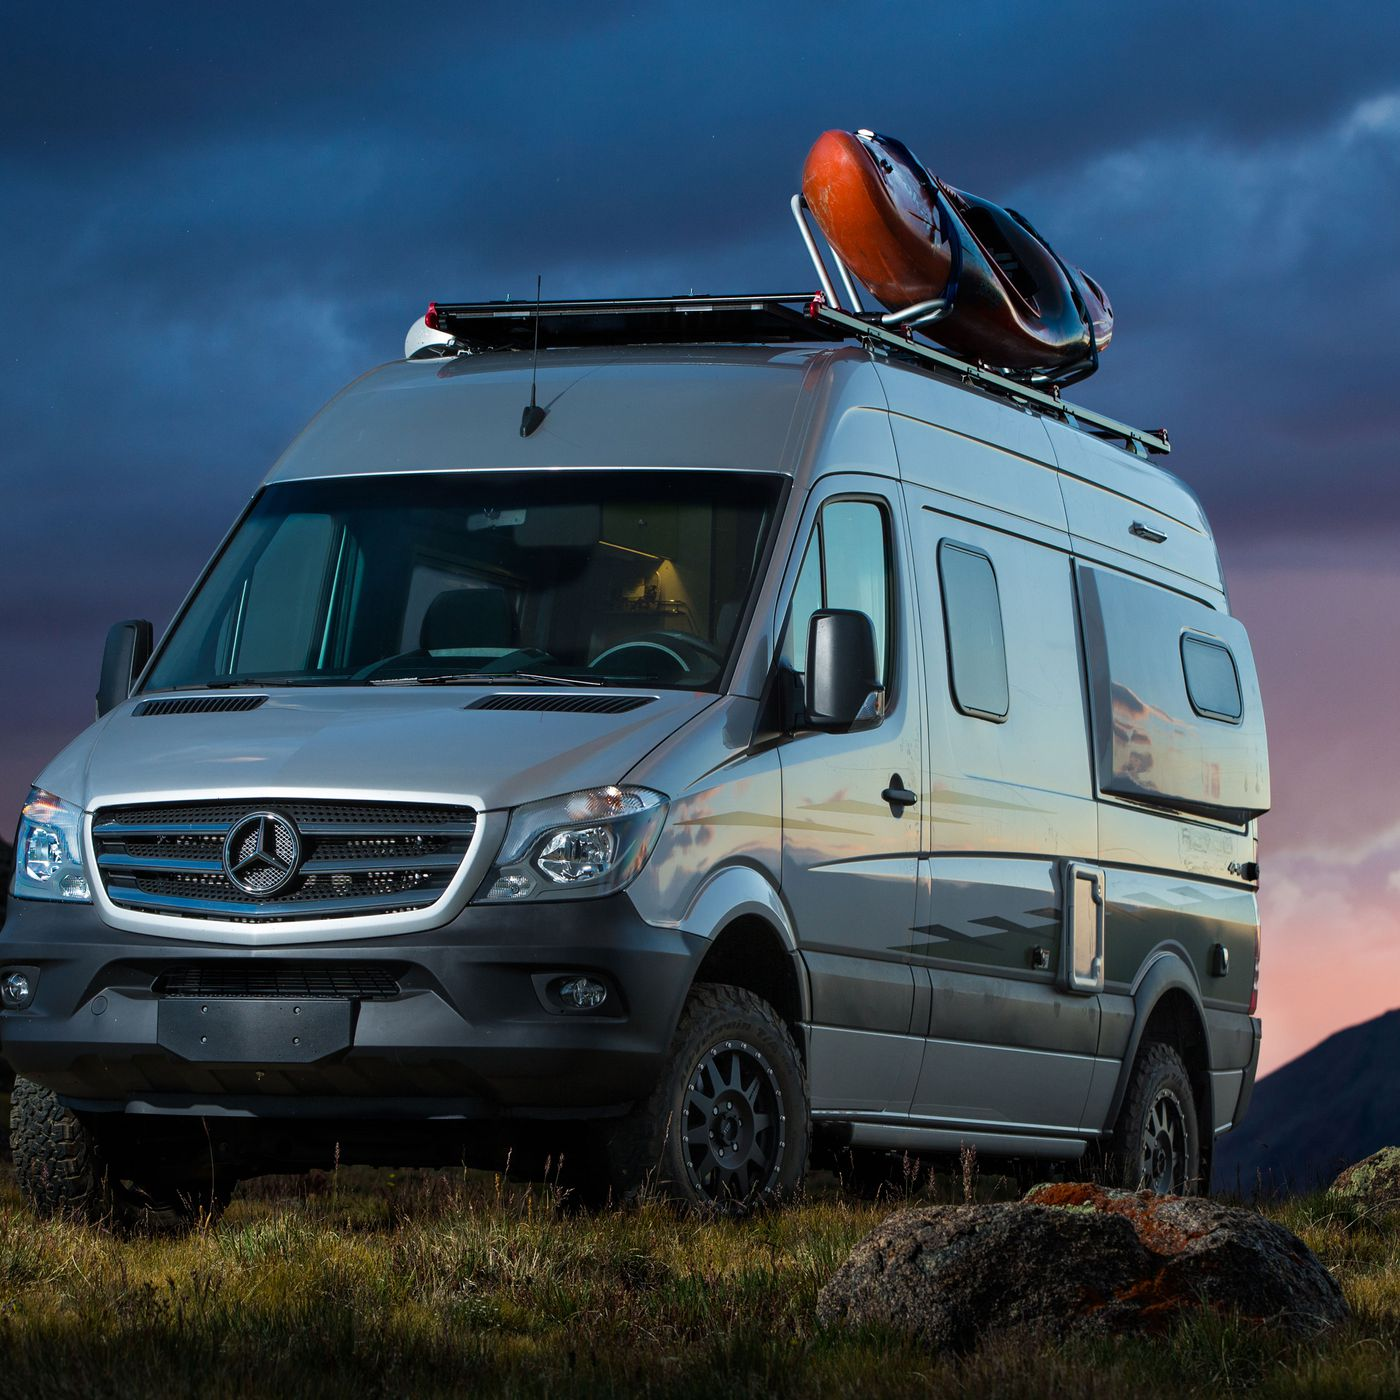 The 5 best RVs and camper vans you can right now Curbed